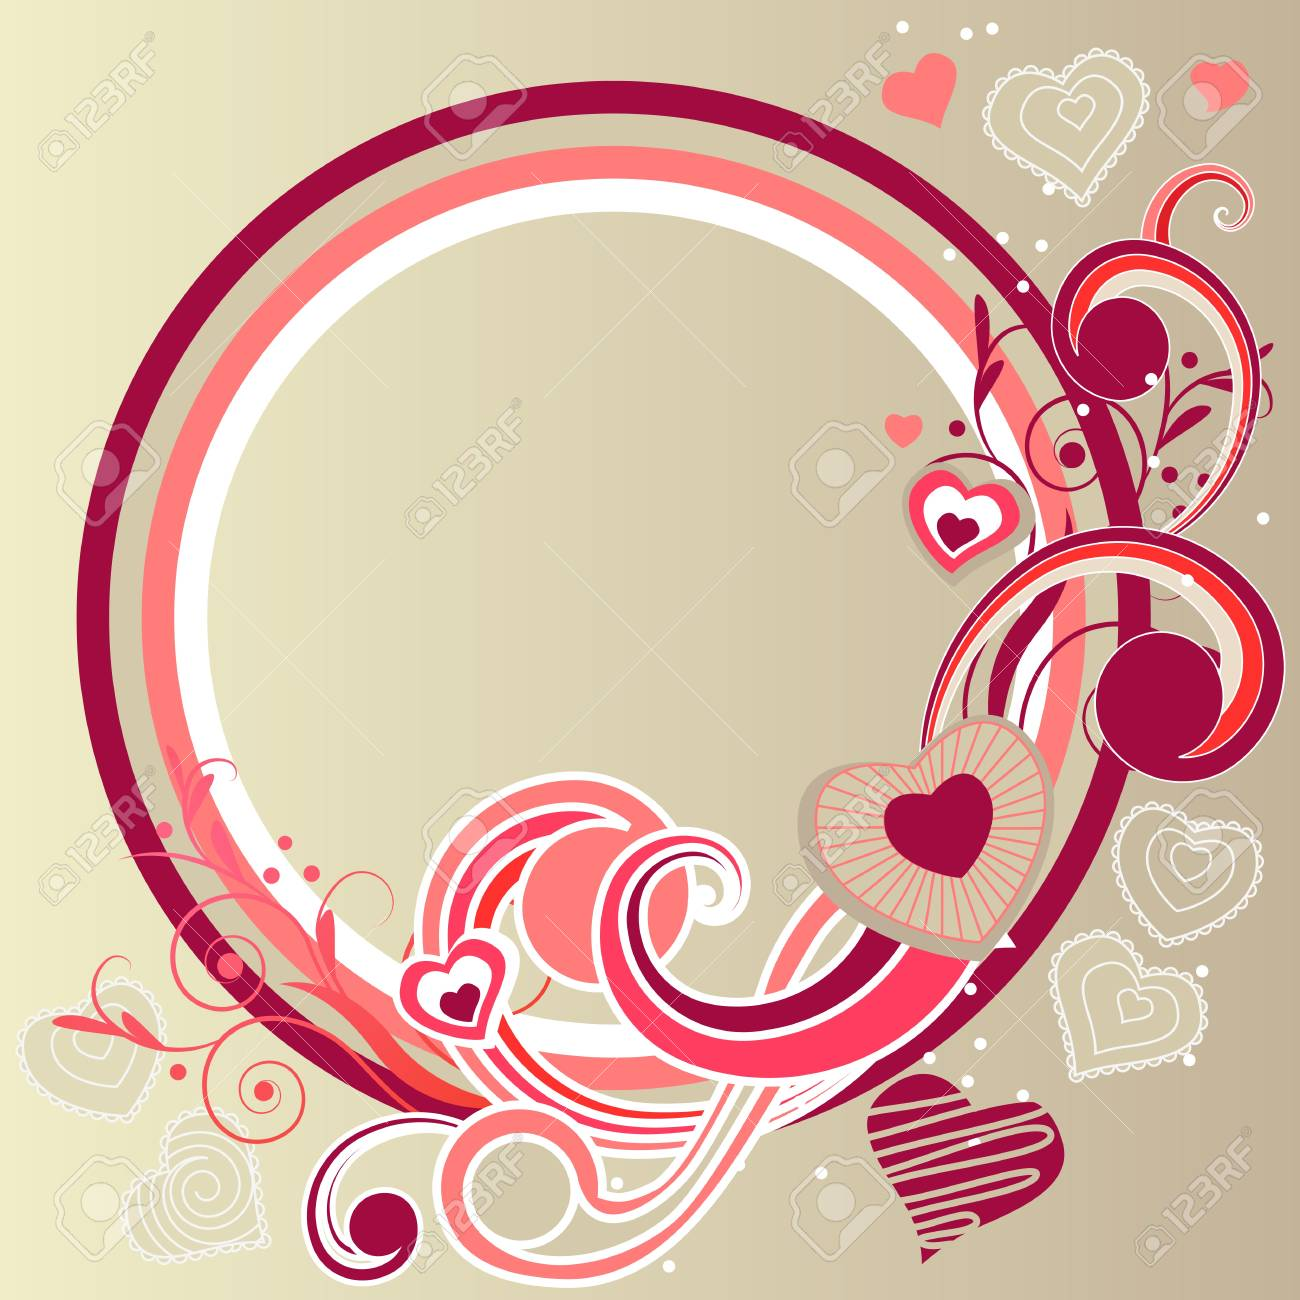 Frame with hearts and swirl elements Stock Vector - 8659200